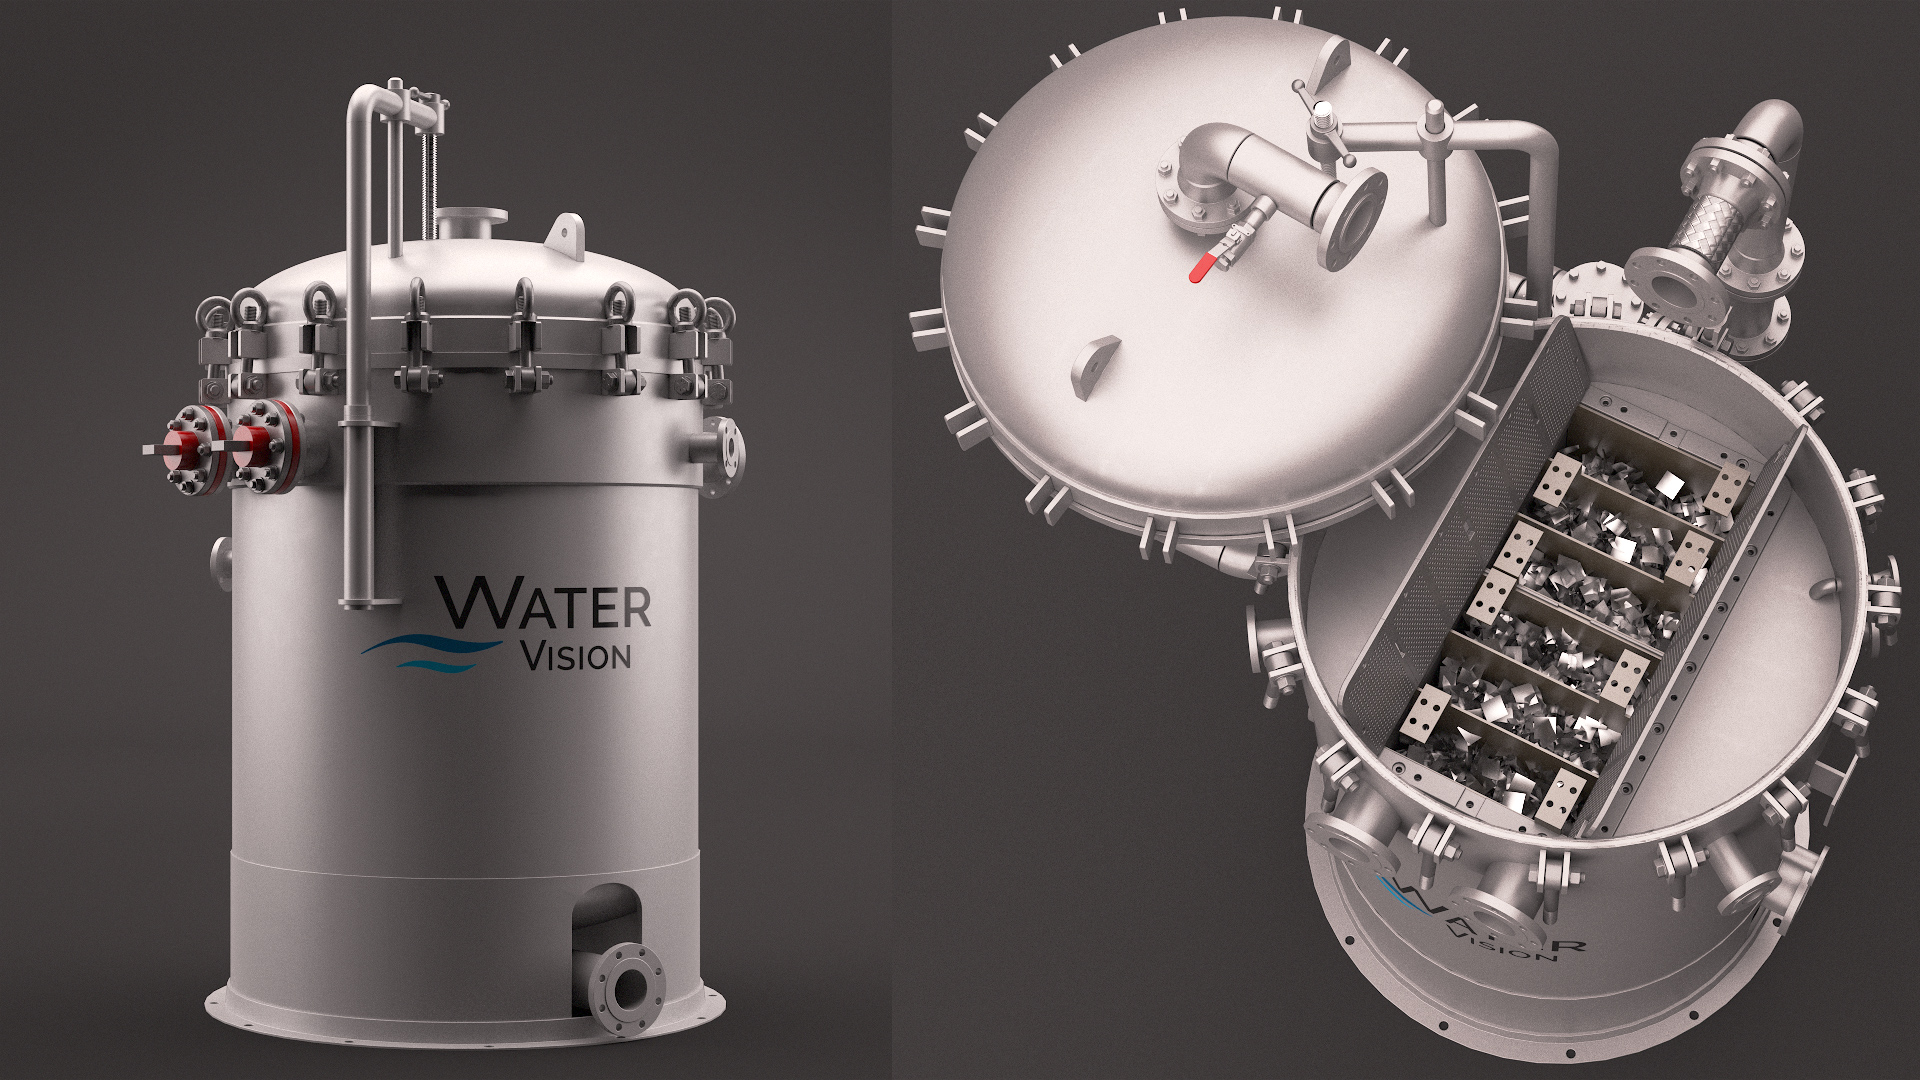 The new vessel for Thincell is shown. (Source: Water Vision Inc.)